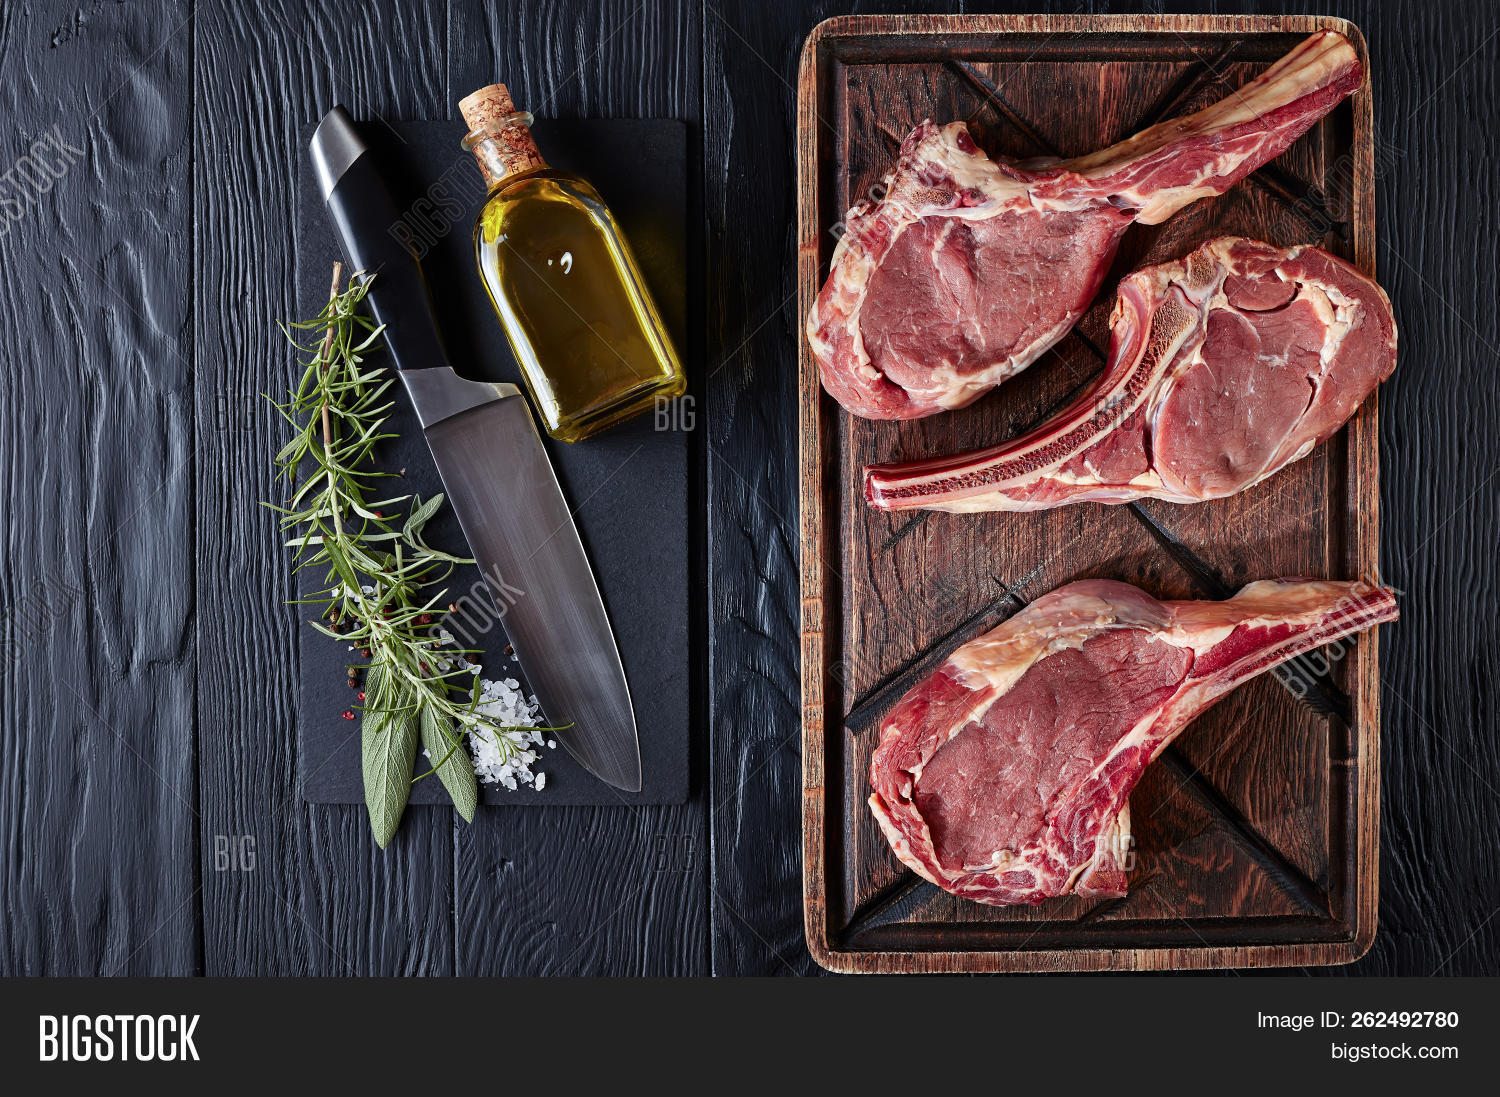 three Dry aged raw tomahawk or cowboy beef steaks on an old rude wooden cutting board on a black table with knife, spice and herbs, close-up, flat lay, view from above